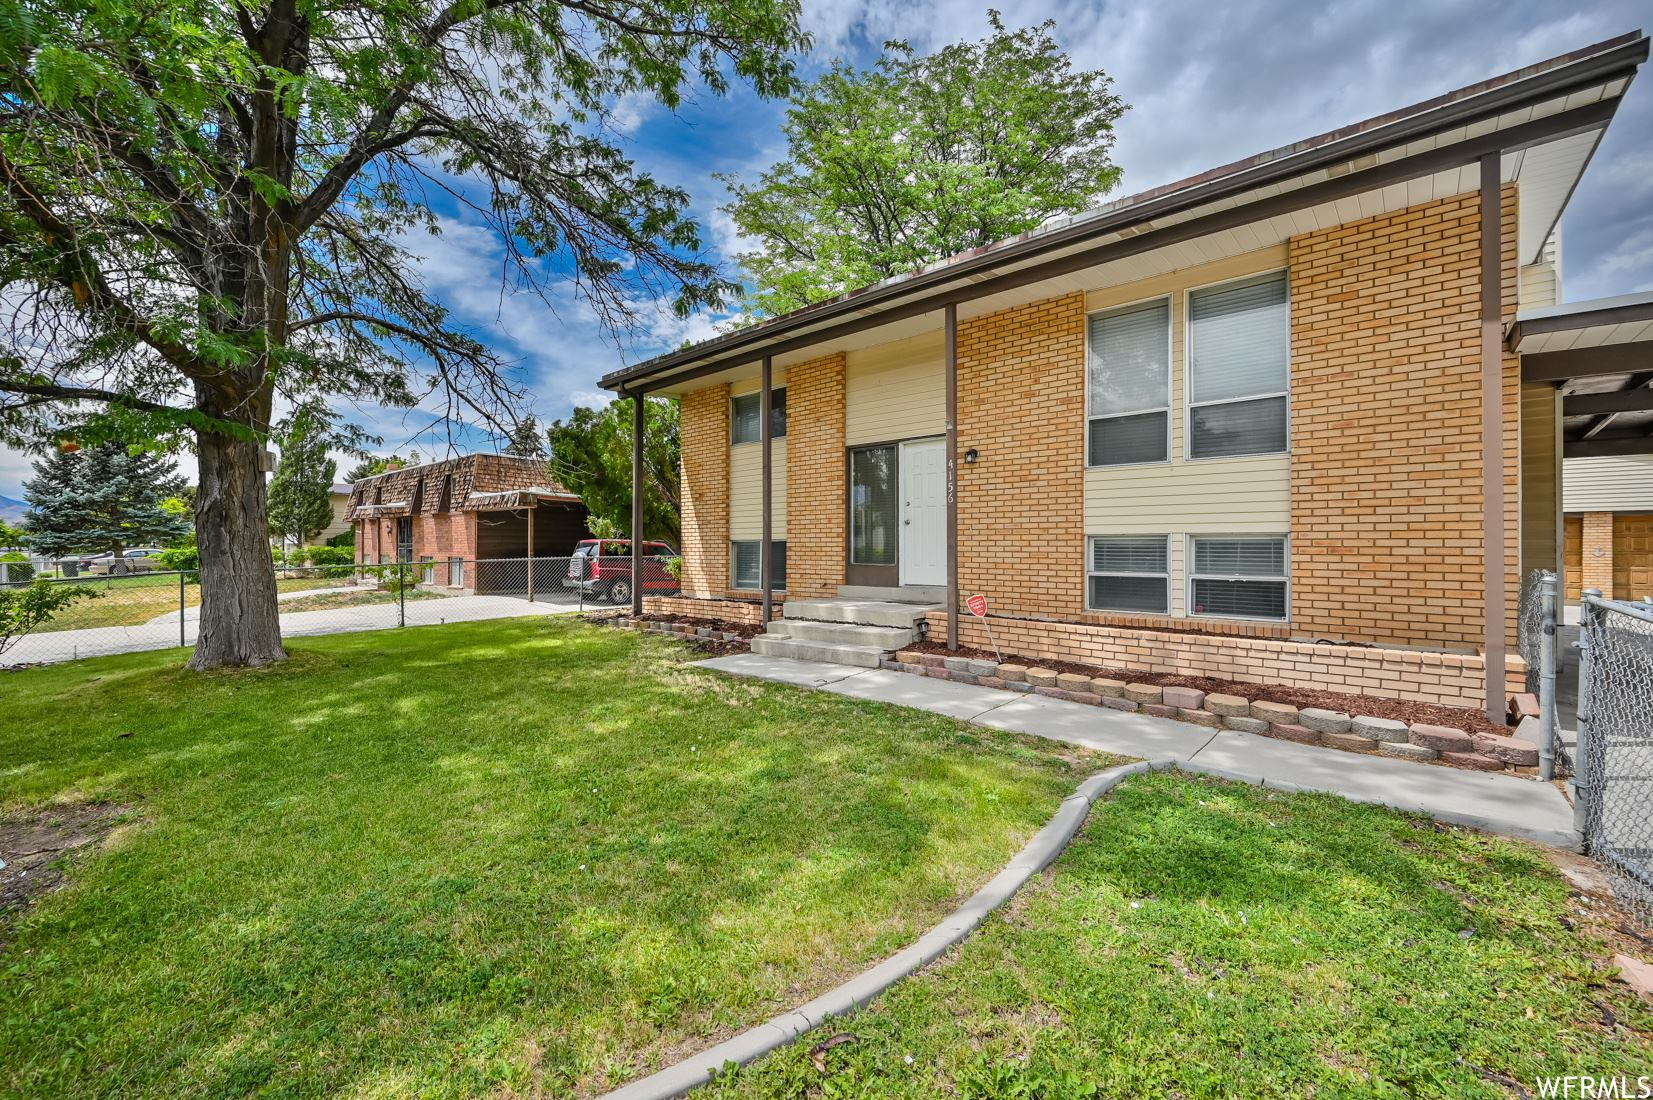 Photo of 4156 W WENDY S AVE, West Valley City, UT 84120 (MLS # 1756842)